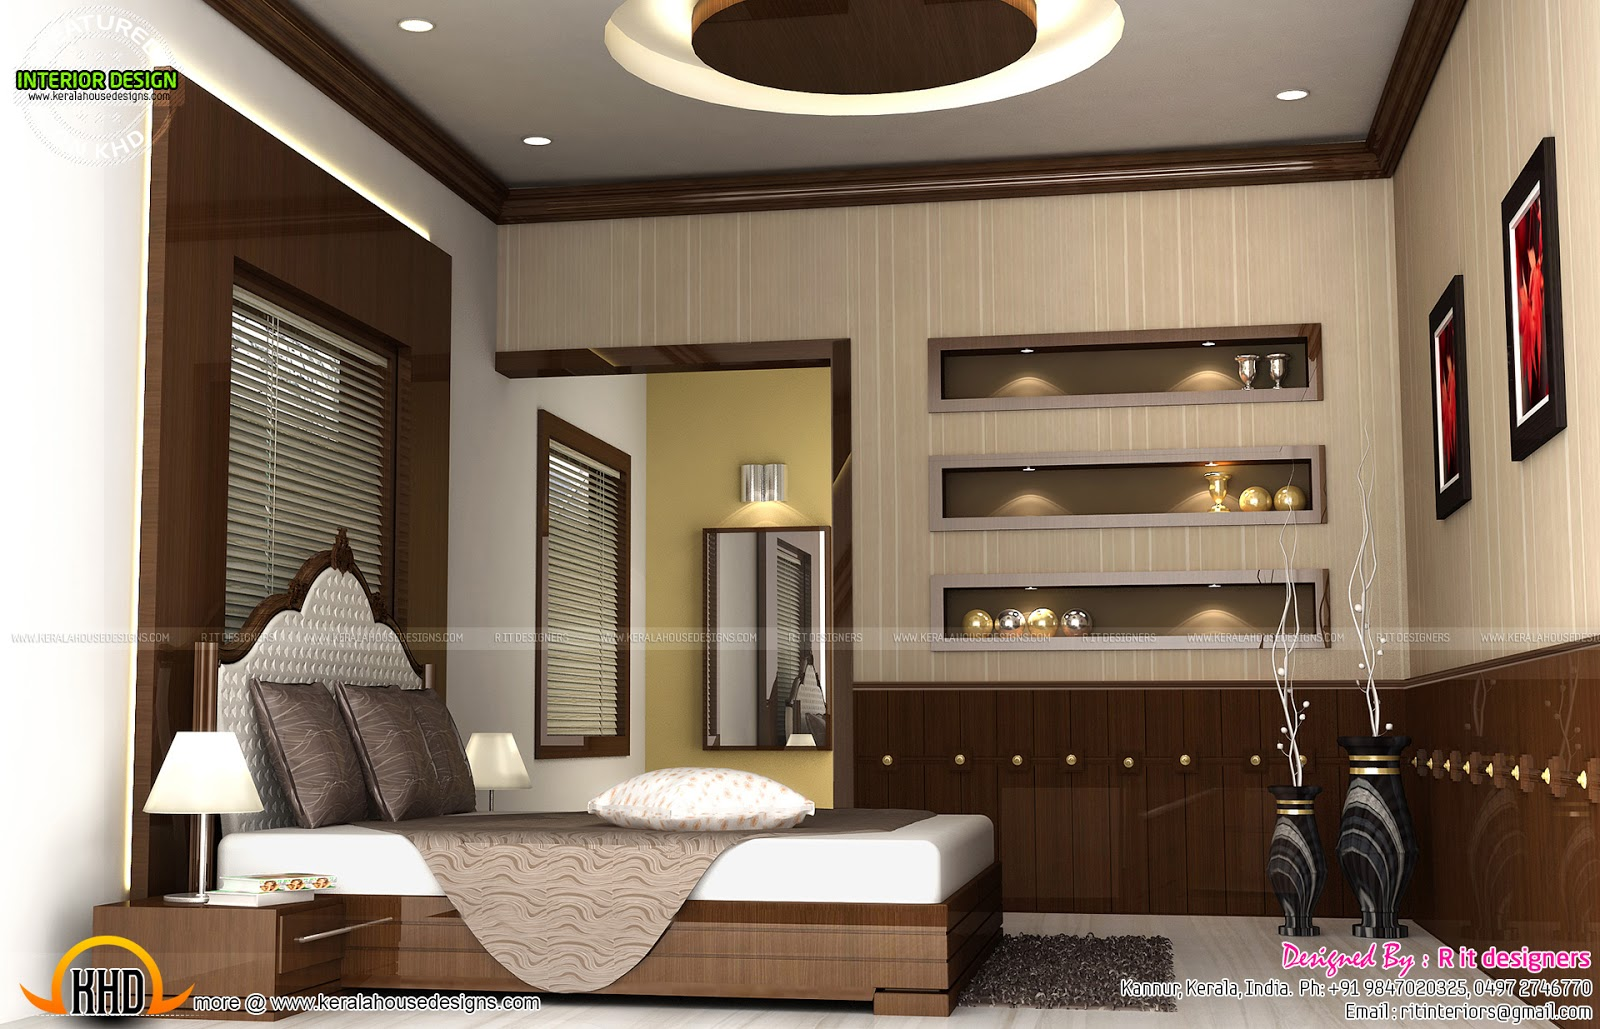 Kerala home design interior bedroom - Modular Kitchen Other View Bedroom Interior Staircase Design